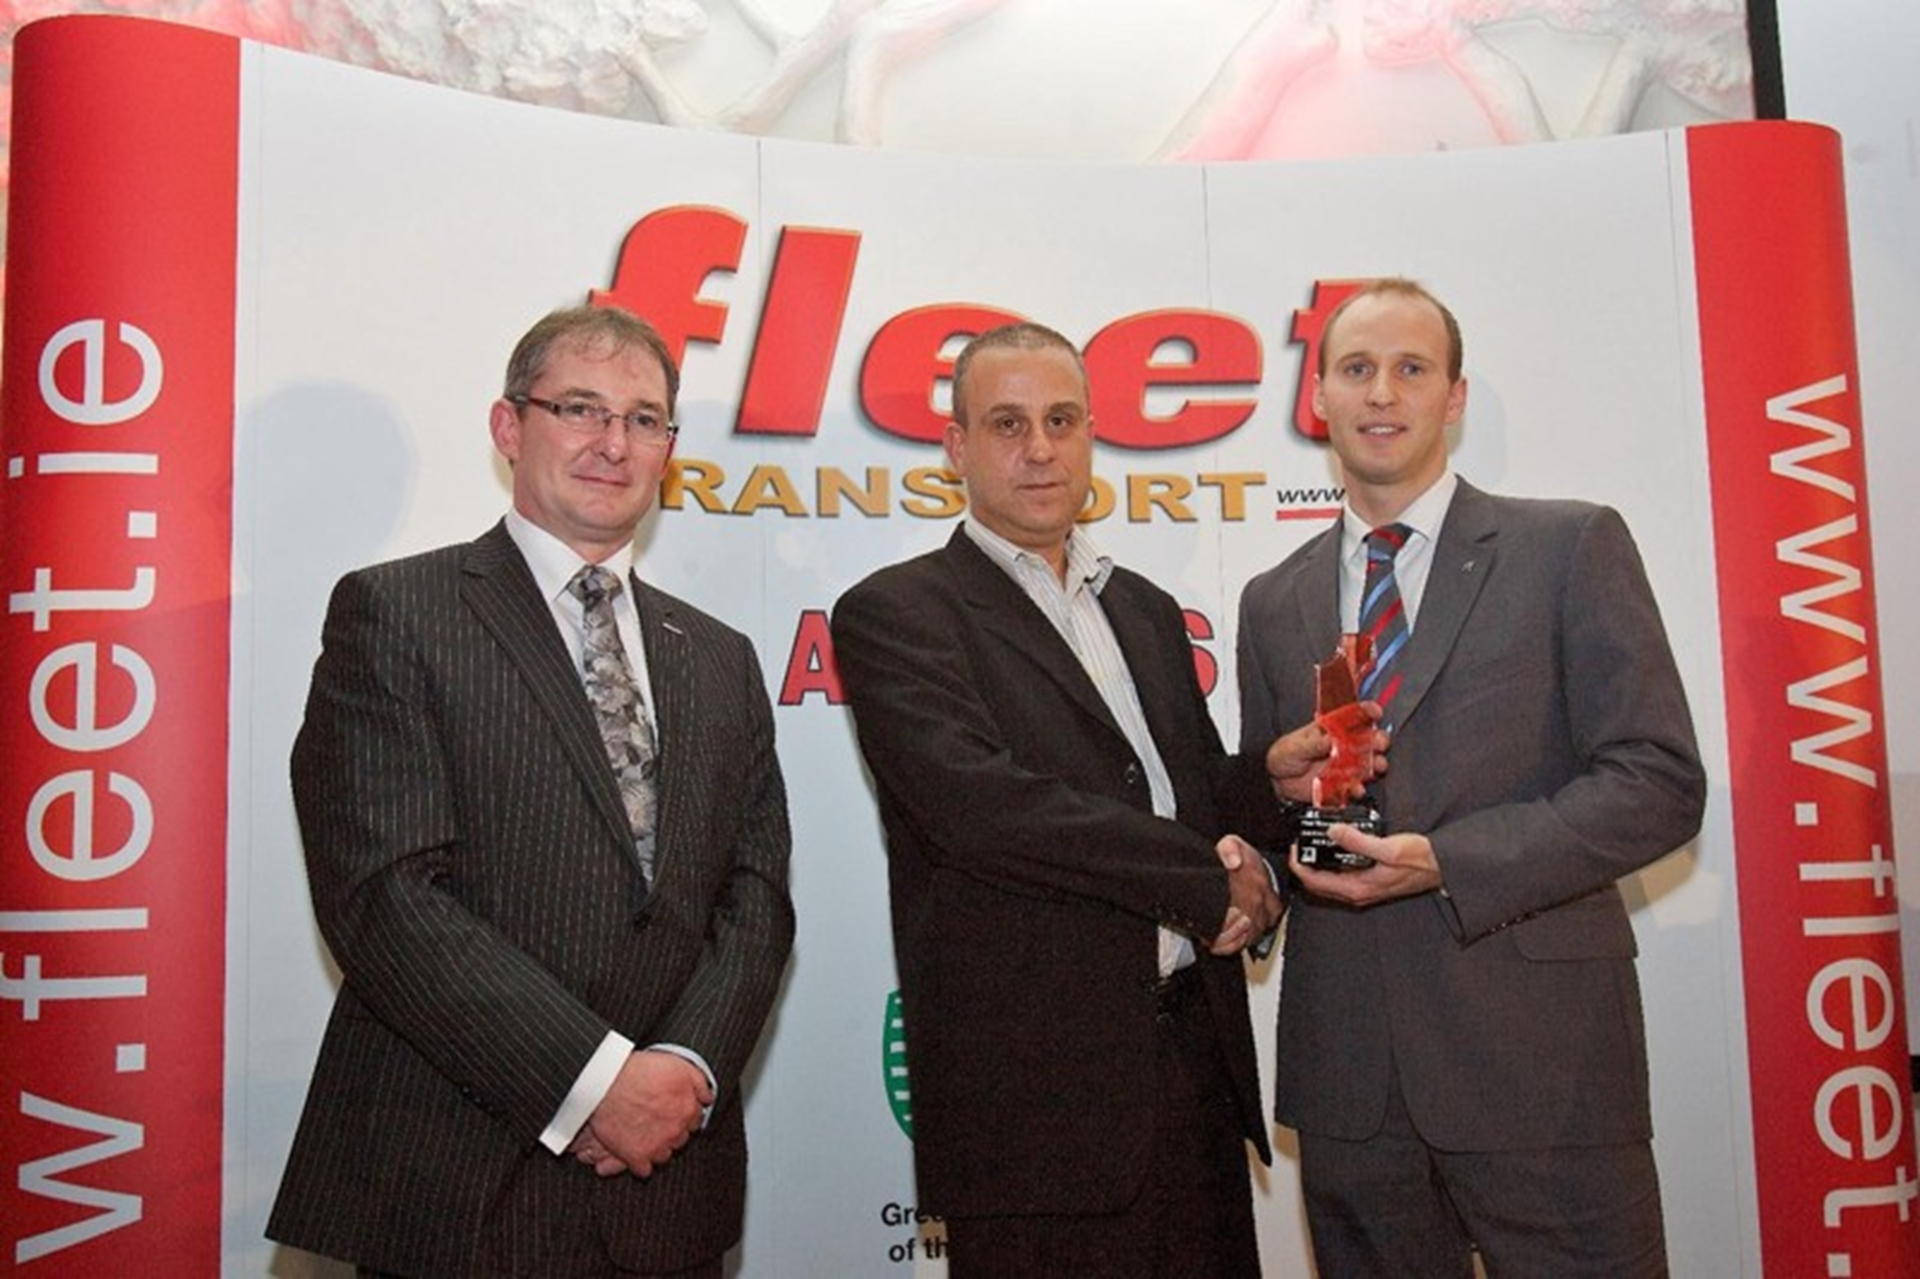 Fleet Transport Awards